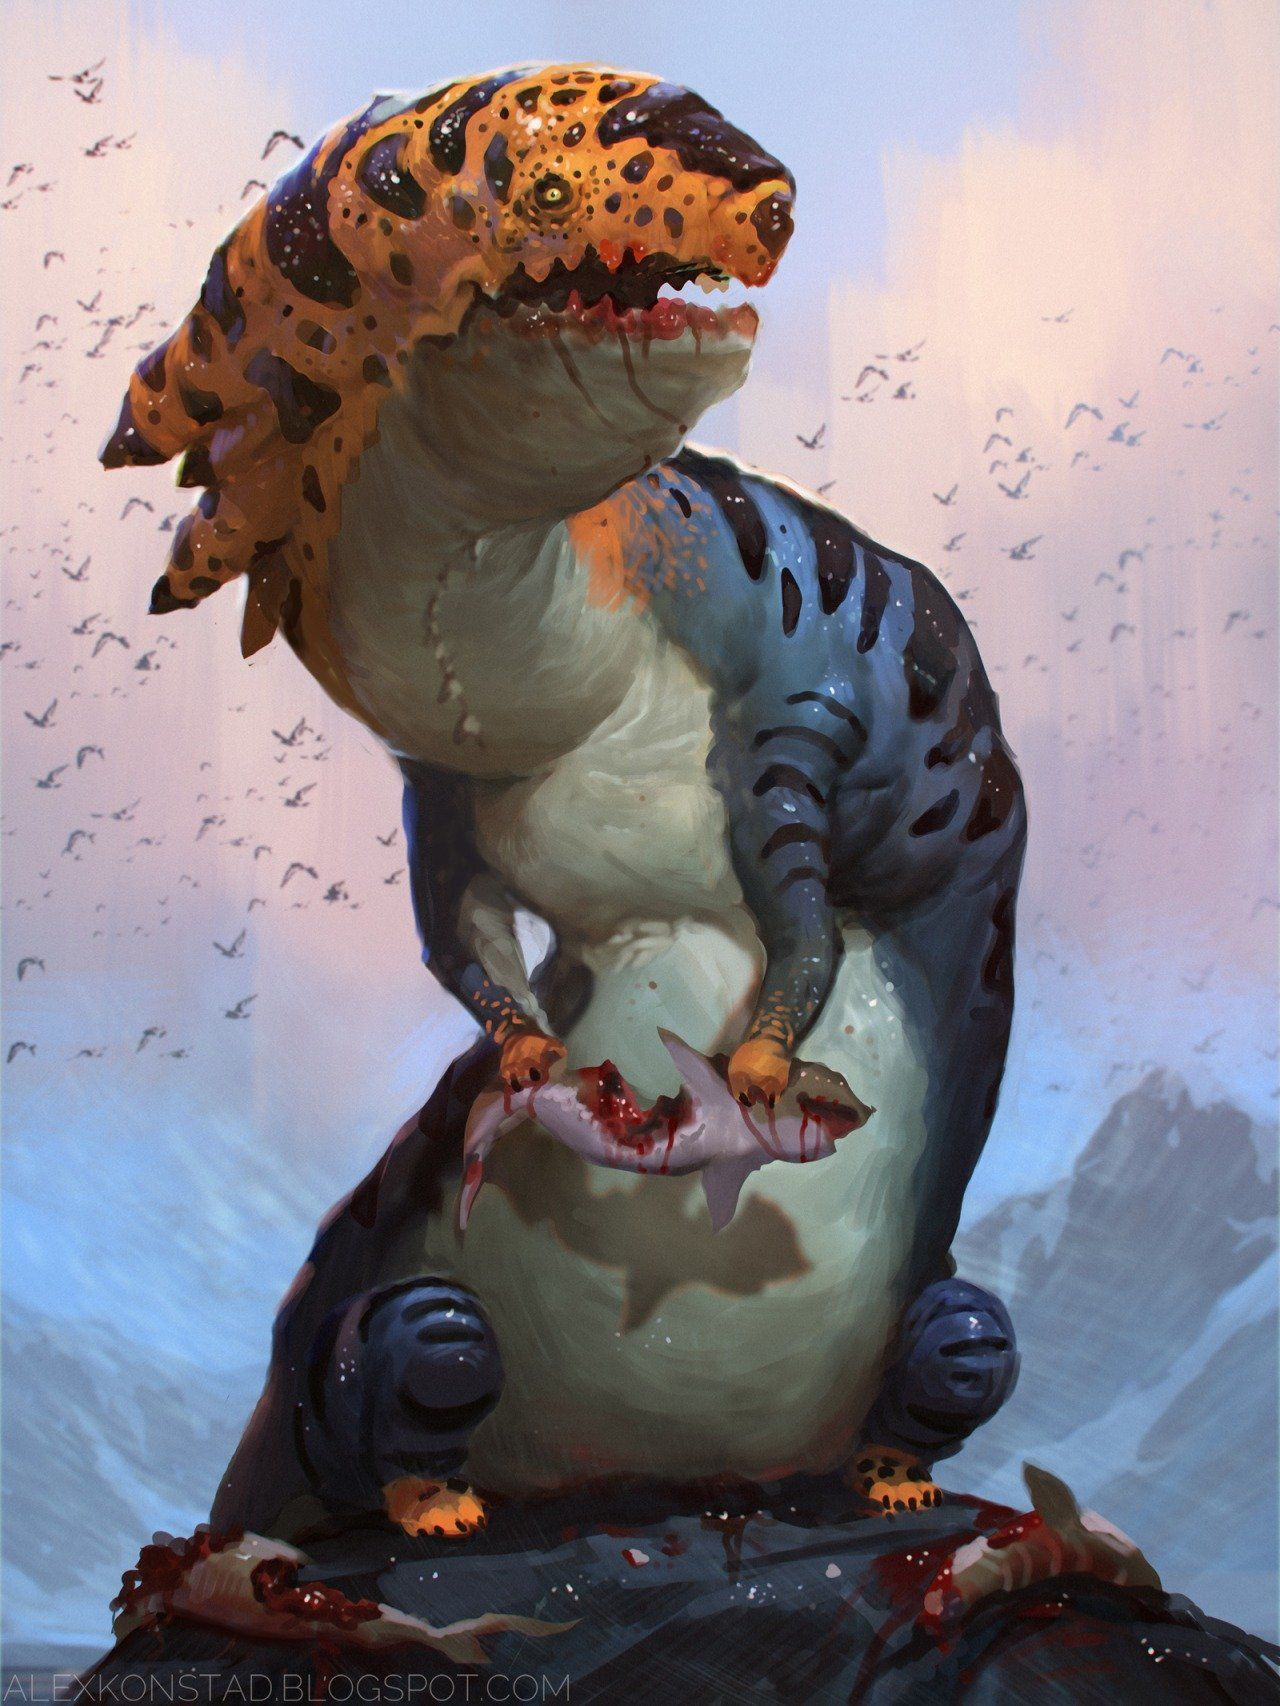 ArtStation - The Hungry Dragon, Alex Konstad